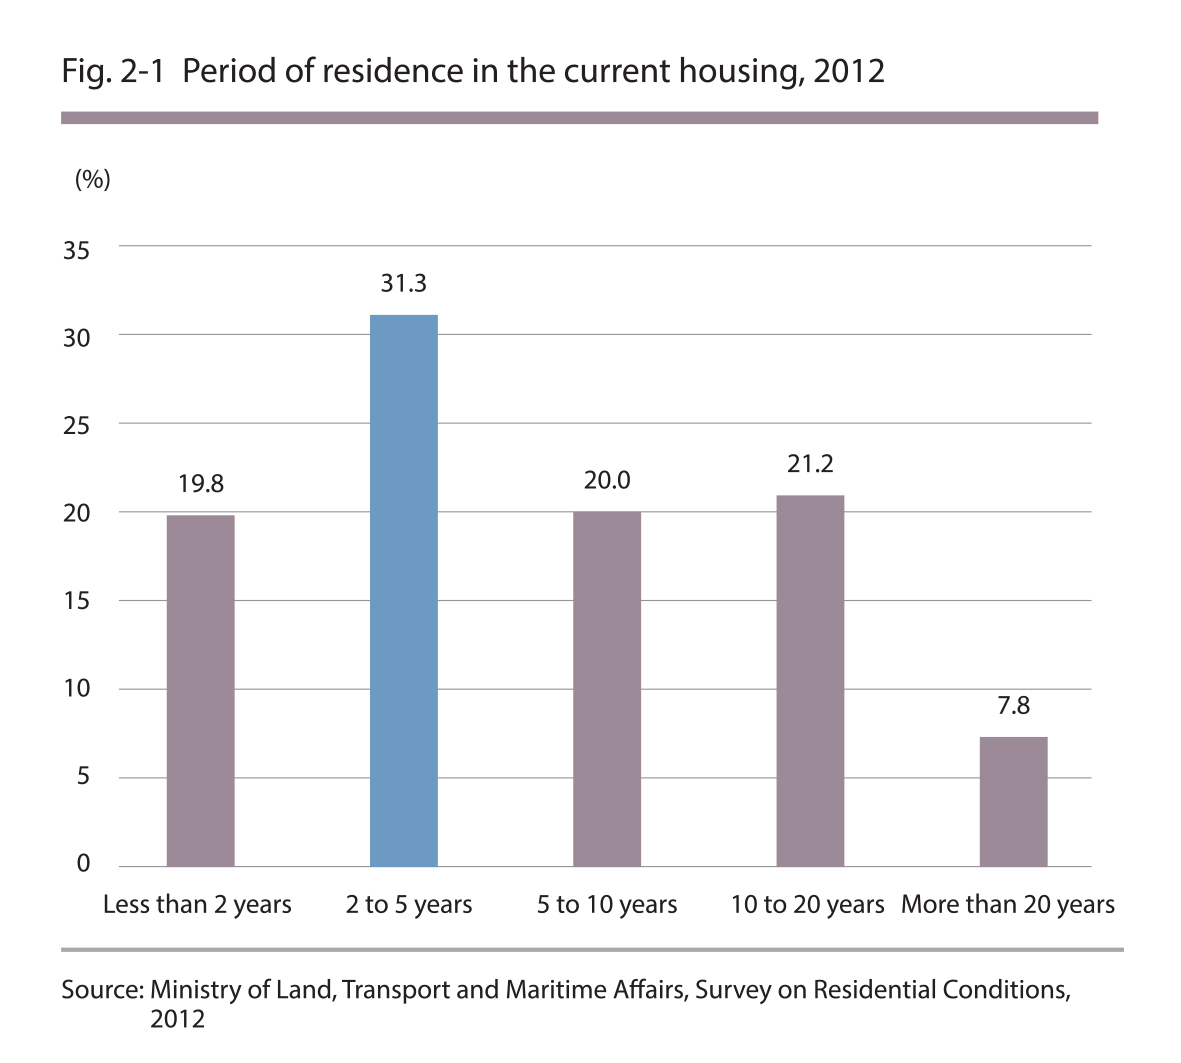 Period of residence in the current housing, 2012